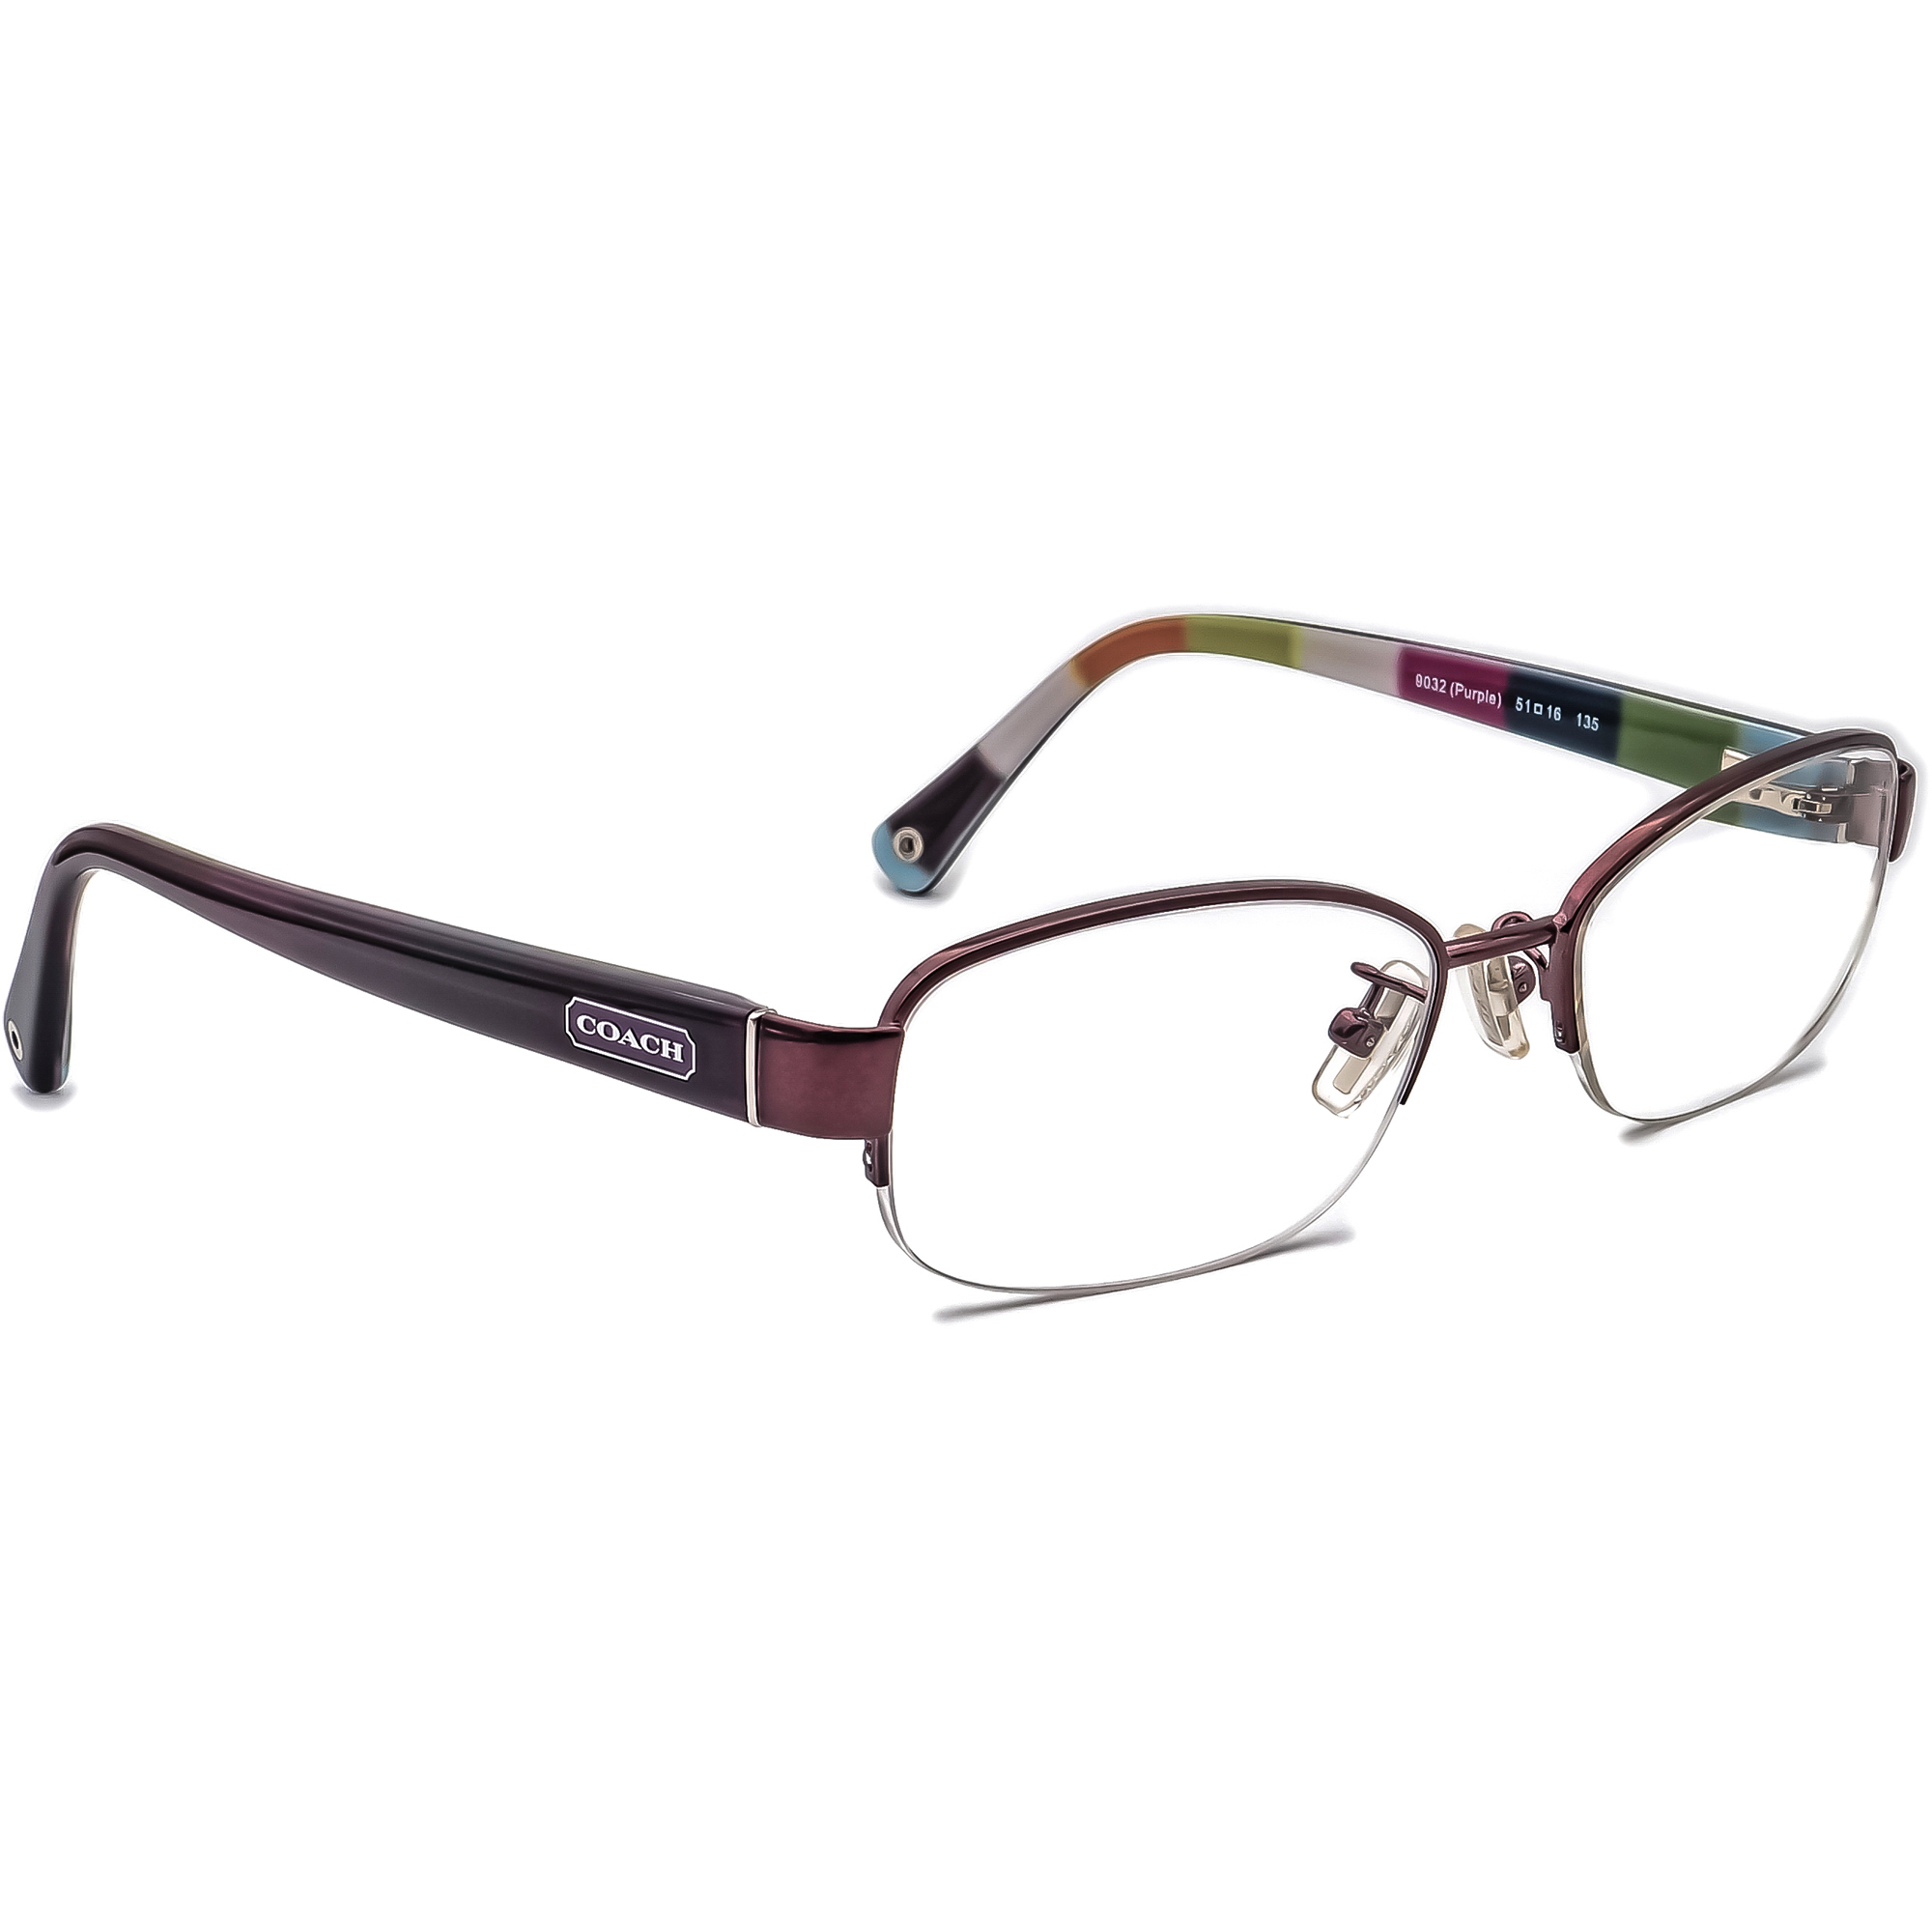 Coach HC 5004 (Bettie) 9032 Eyeglasses